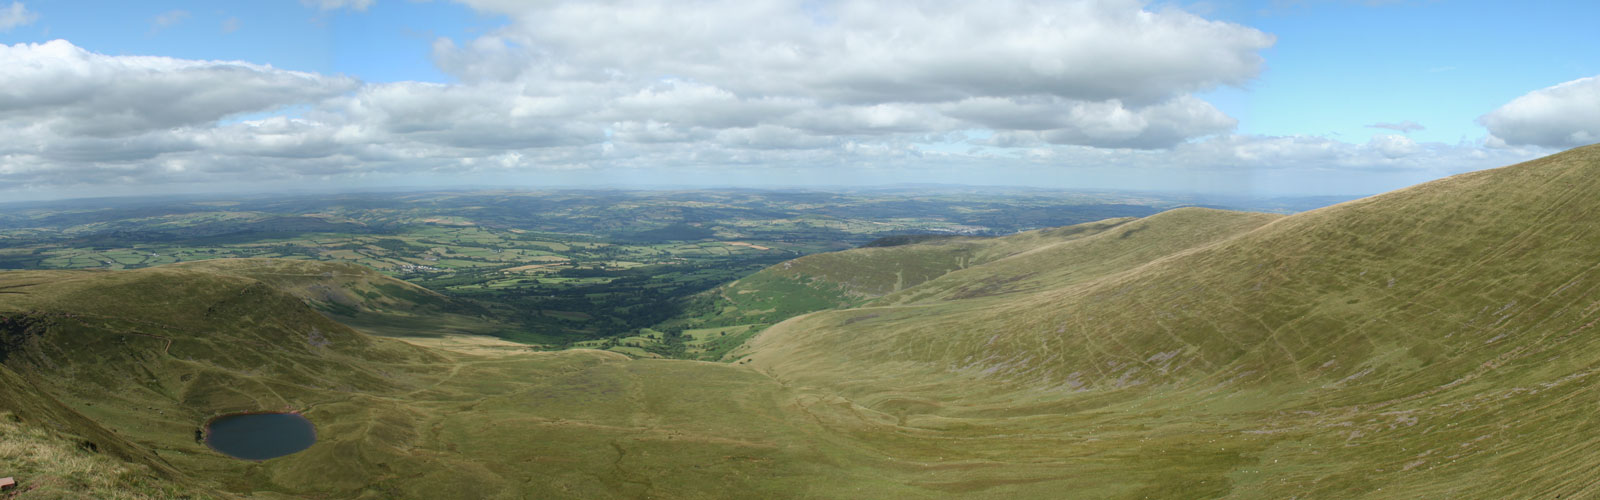 View north into Cwm Llwch from Corn Du, in the Brecon Beacons